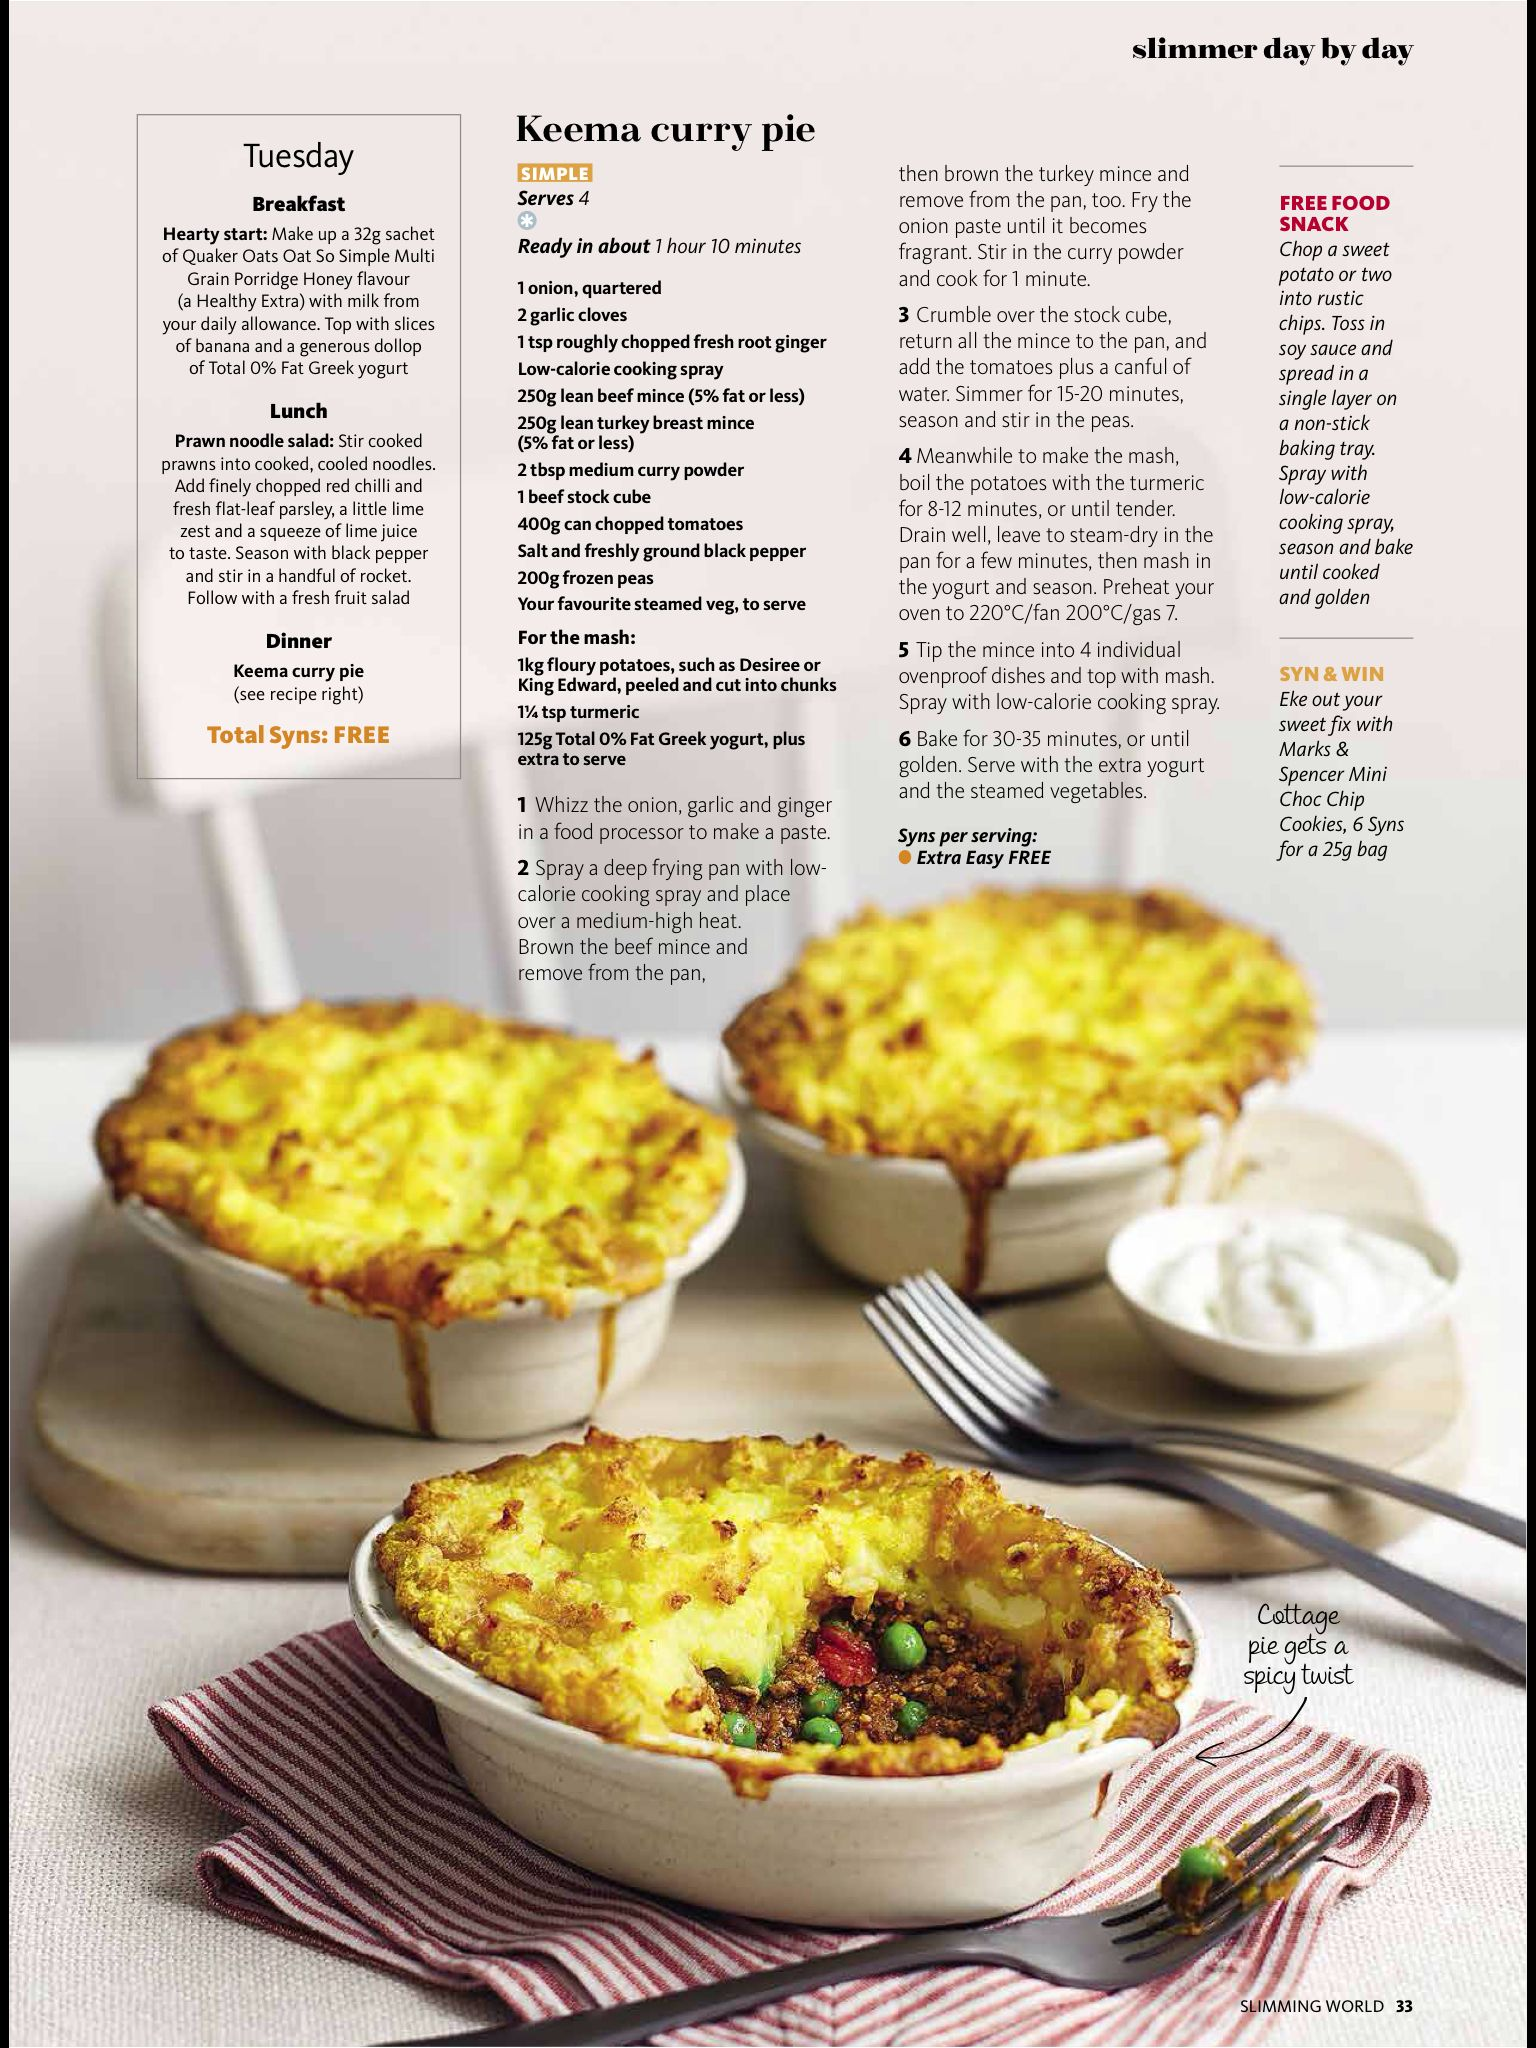 Keema Curry Pie Food Slimming World Recipes Food Recipes